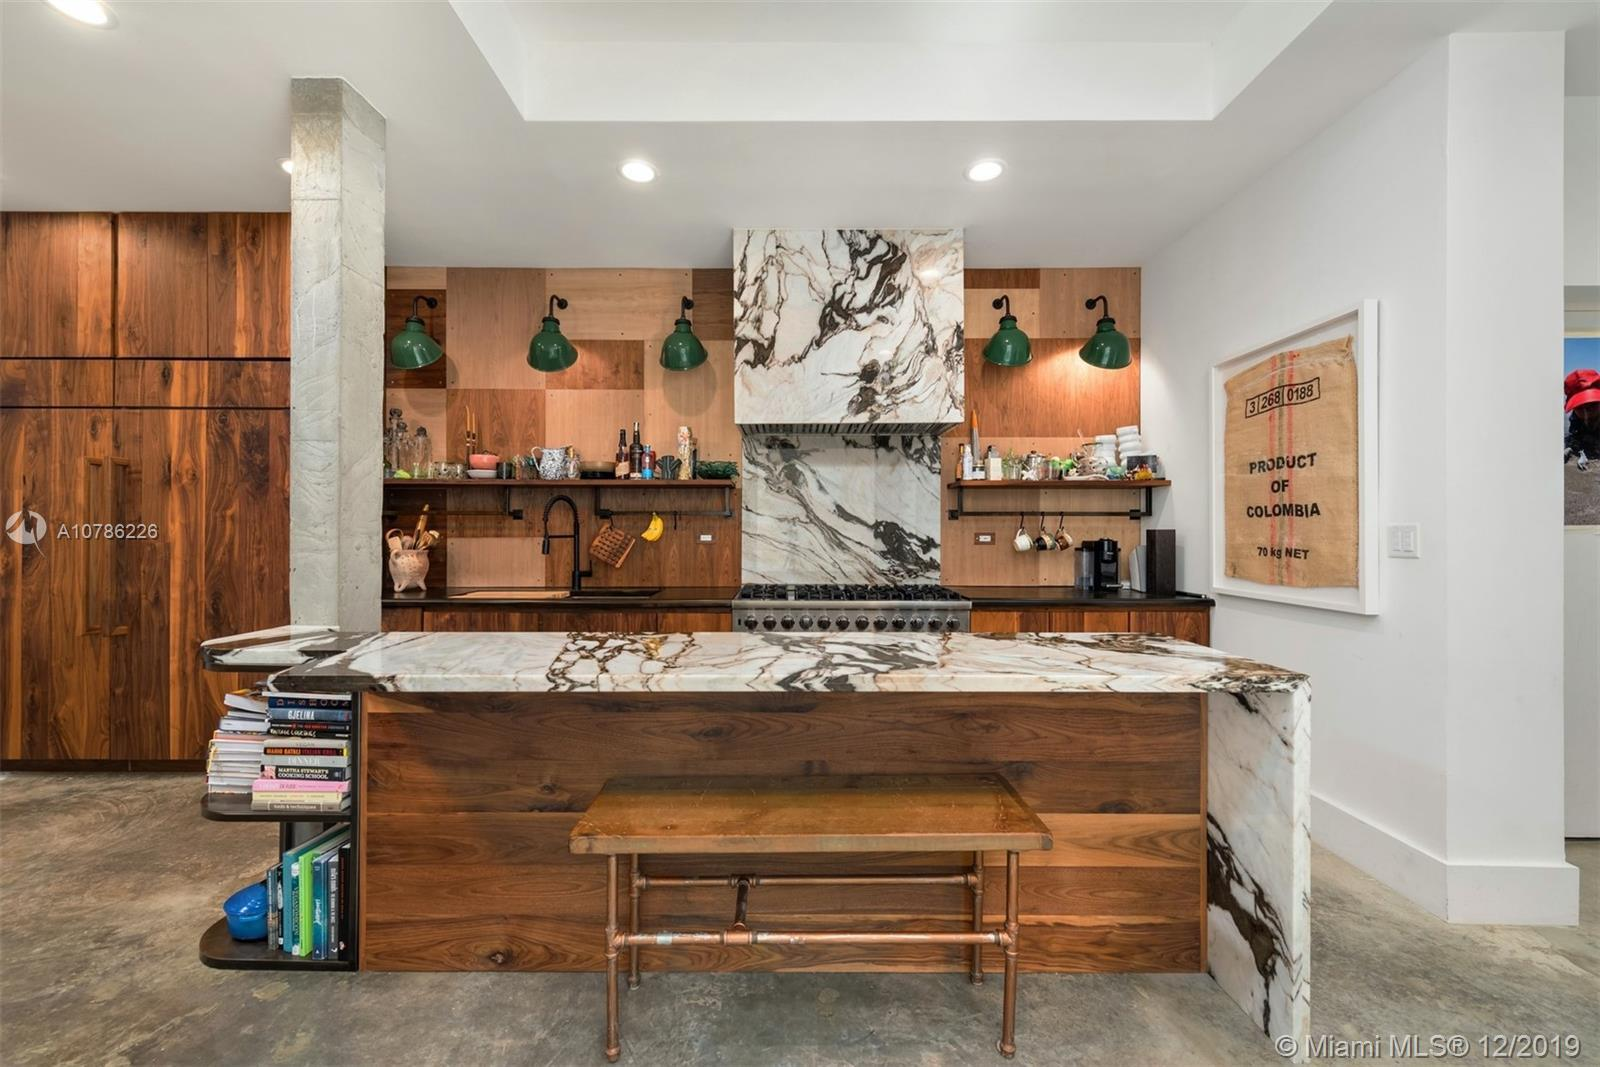 One of a kind fully renovated modern townhome meticulously redesigned feat. 12 FT ceilings, private